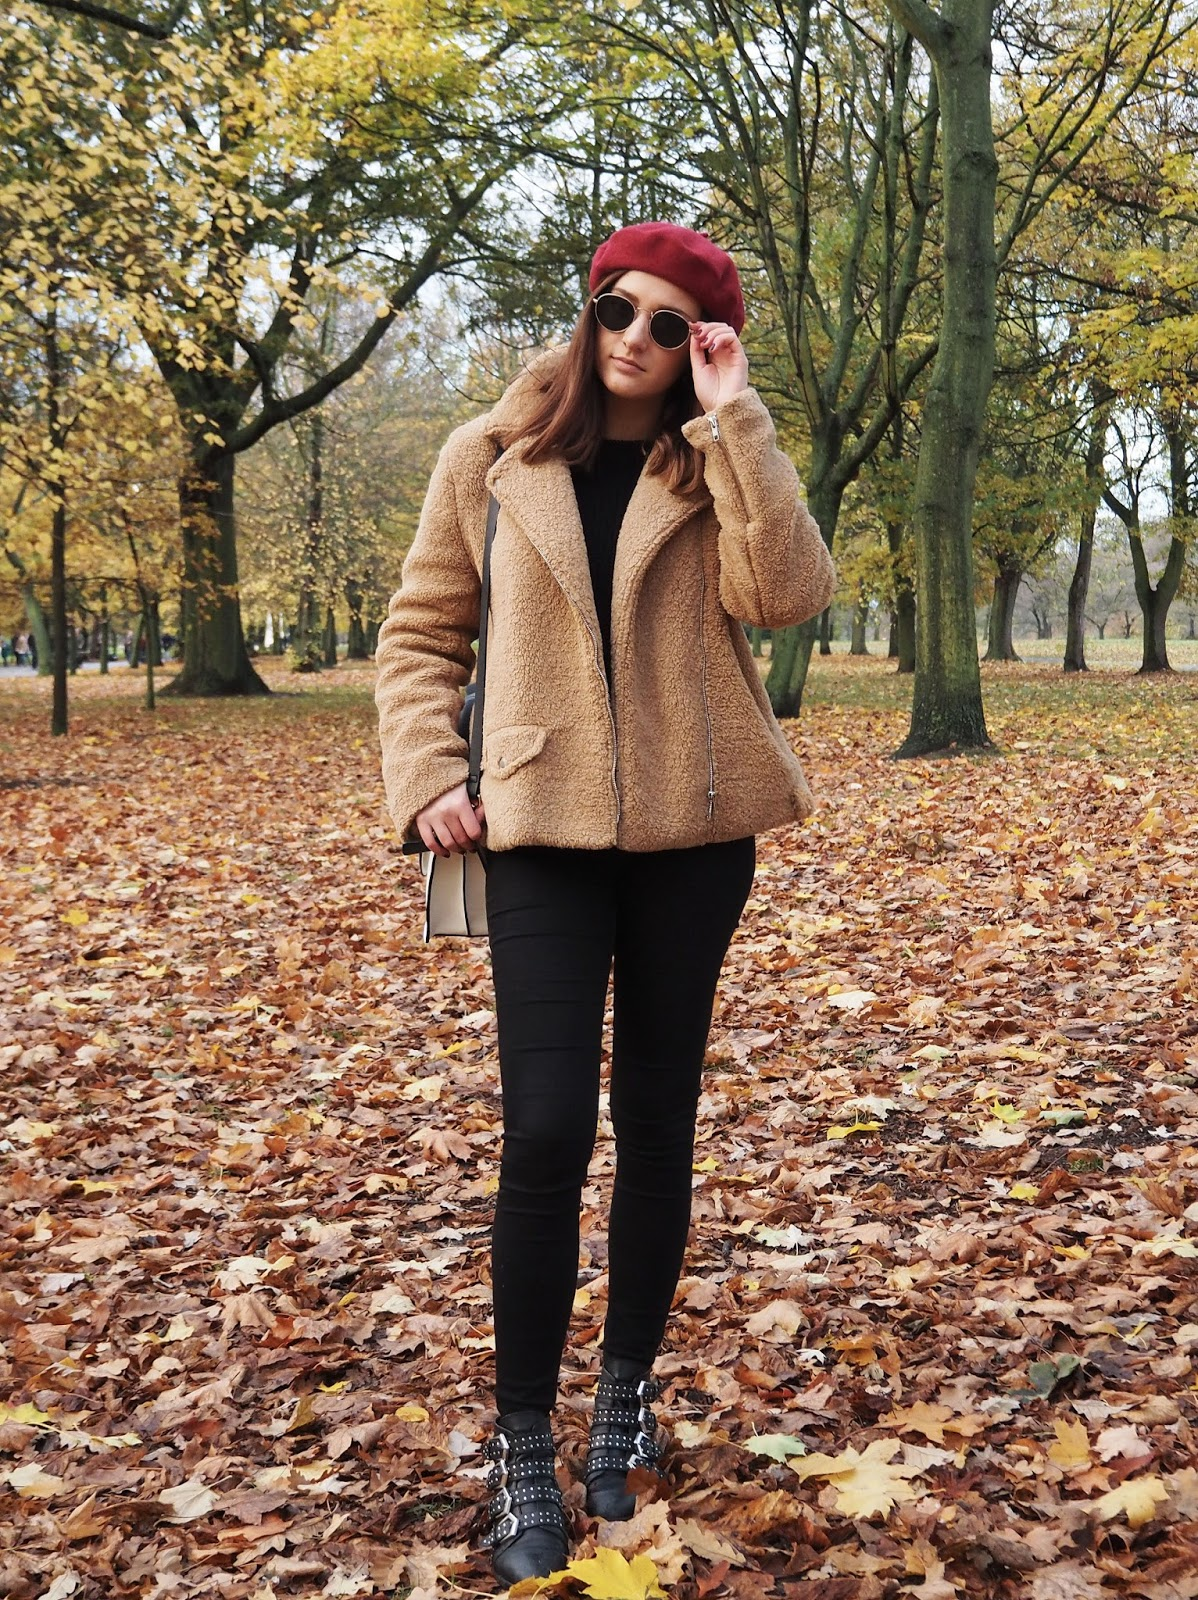 The Teddy Bear Coat Missguided - LAUREN ROSE STYLE - Autumn Style Fashion Blogger - London Street Style